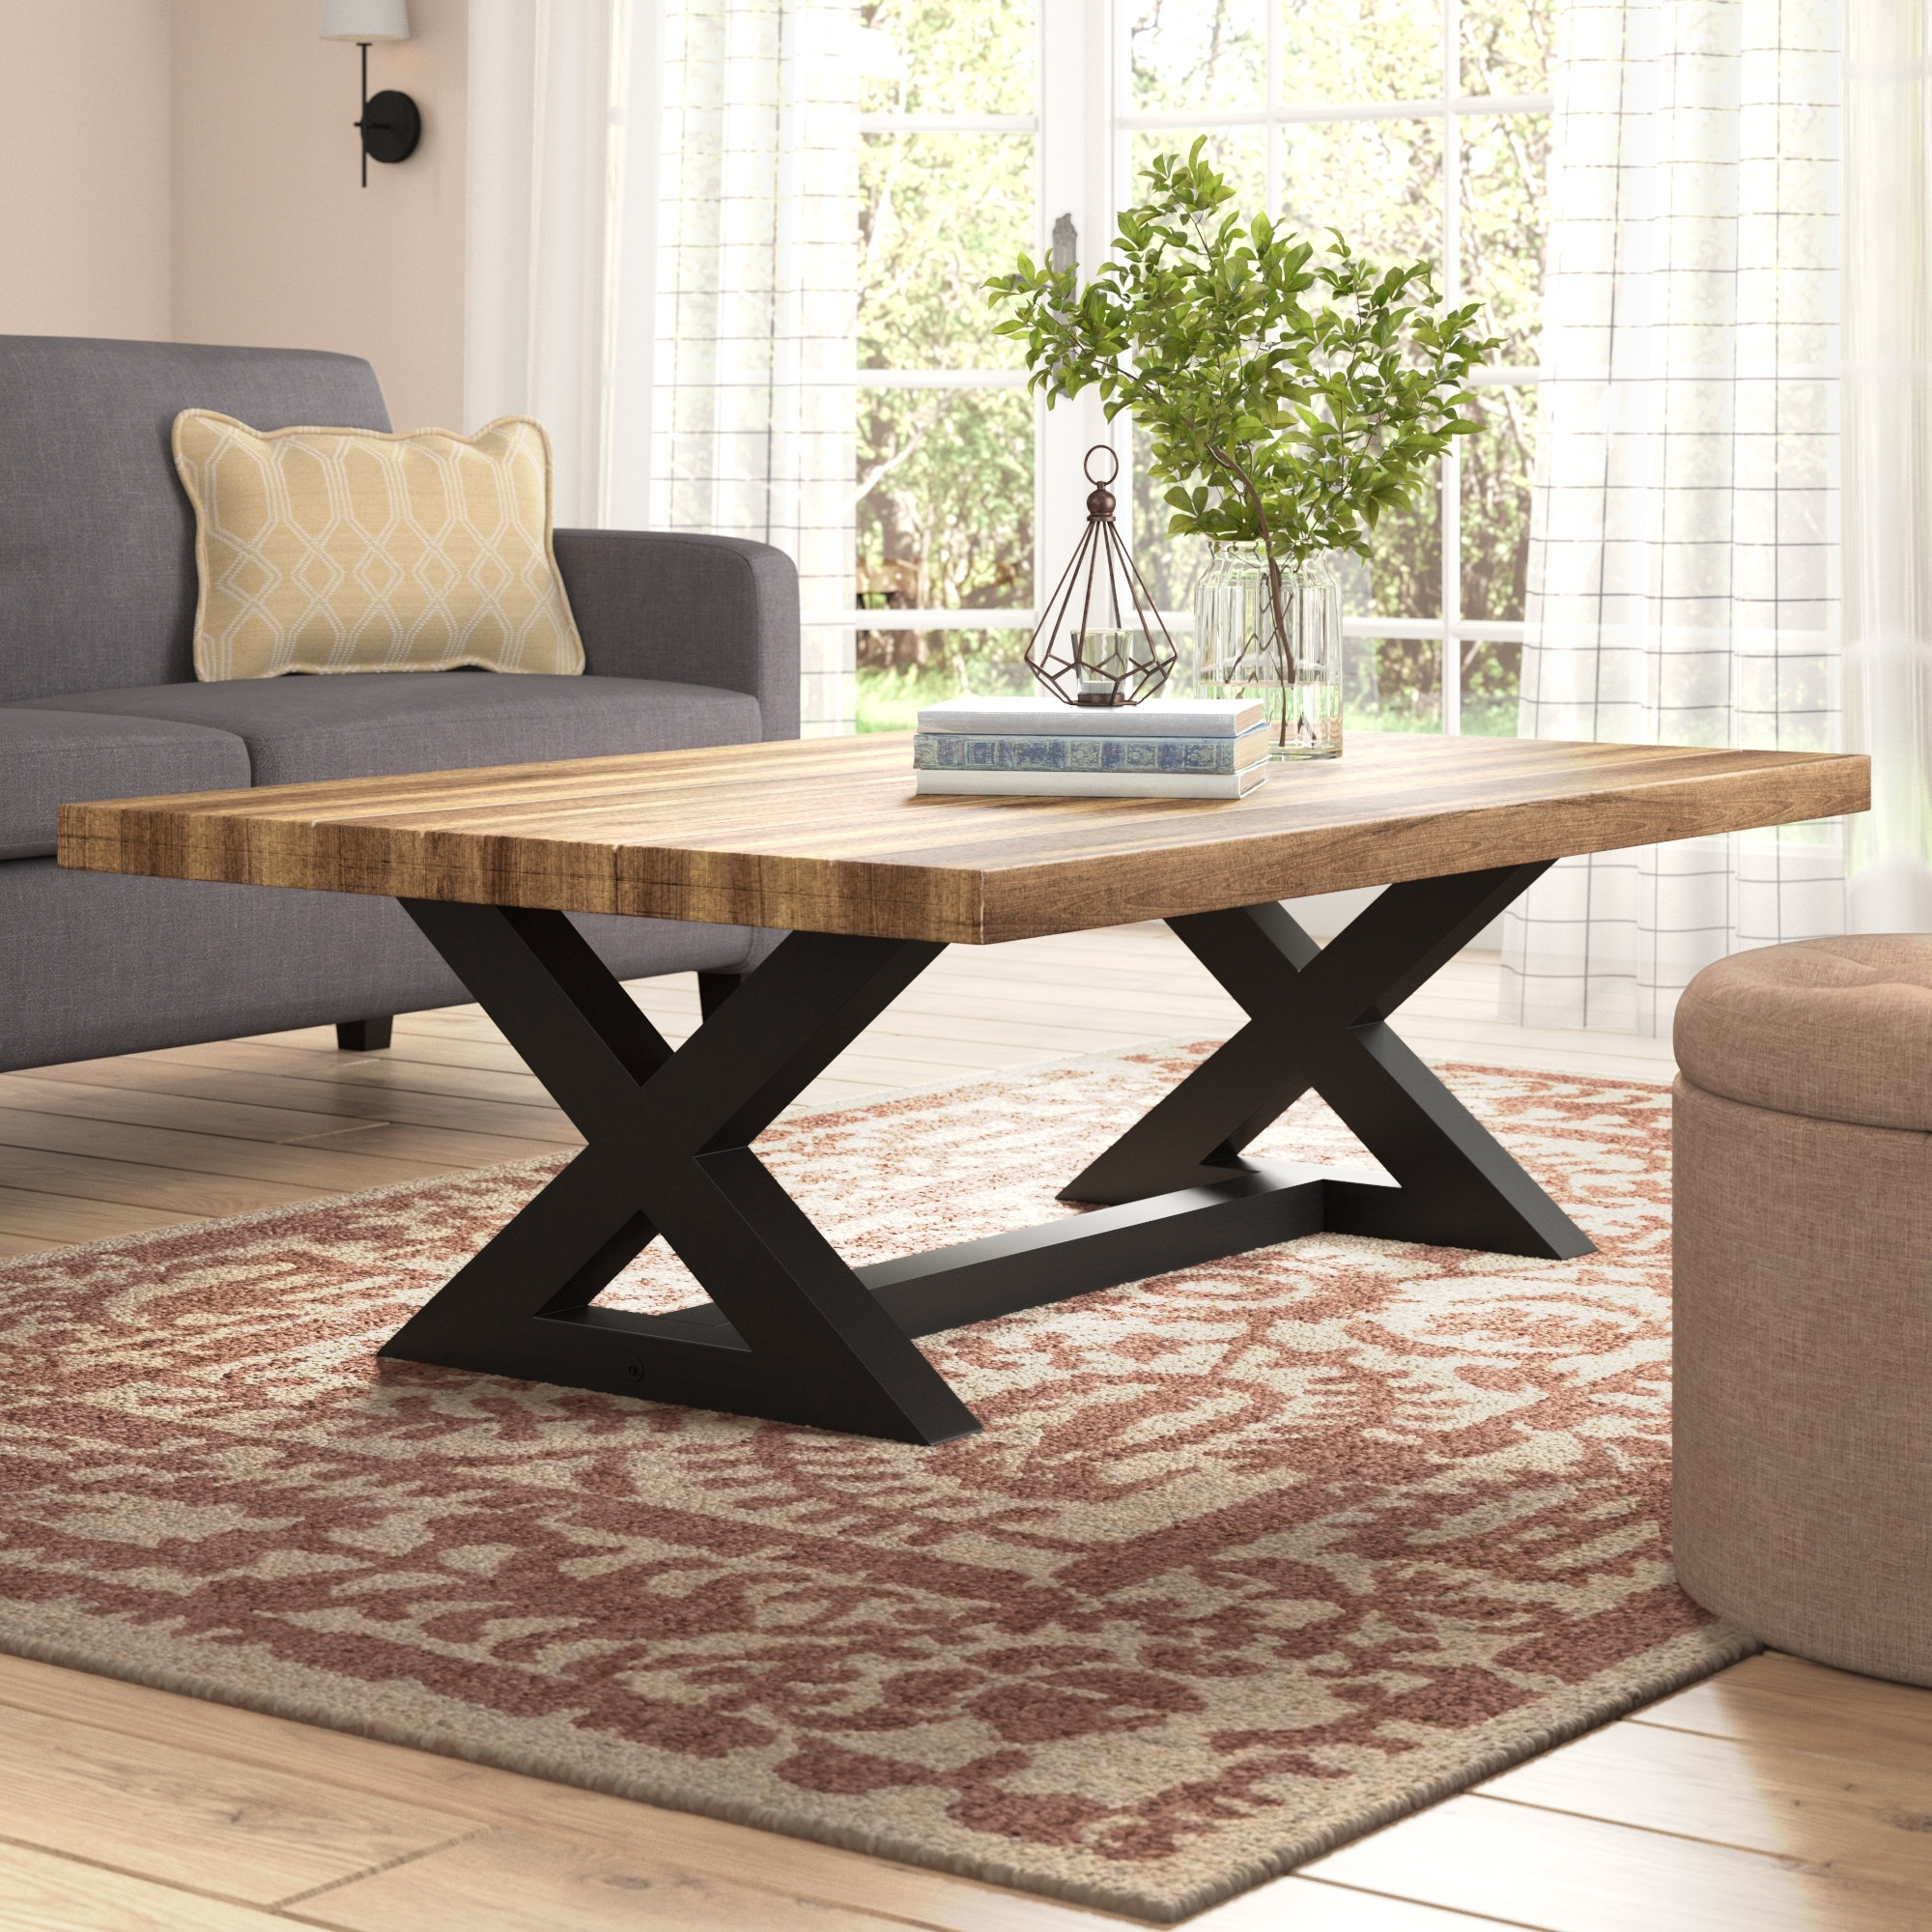 Newest Swell Round Coffee Tables Intended For Laurel Foundry Modern Farmhouse Vivier Coffee Table & Reviews (View 13 of 20)